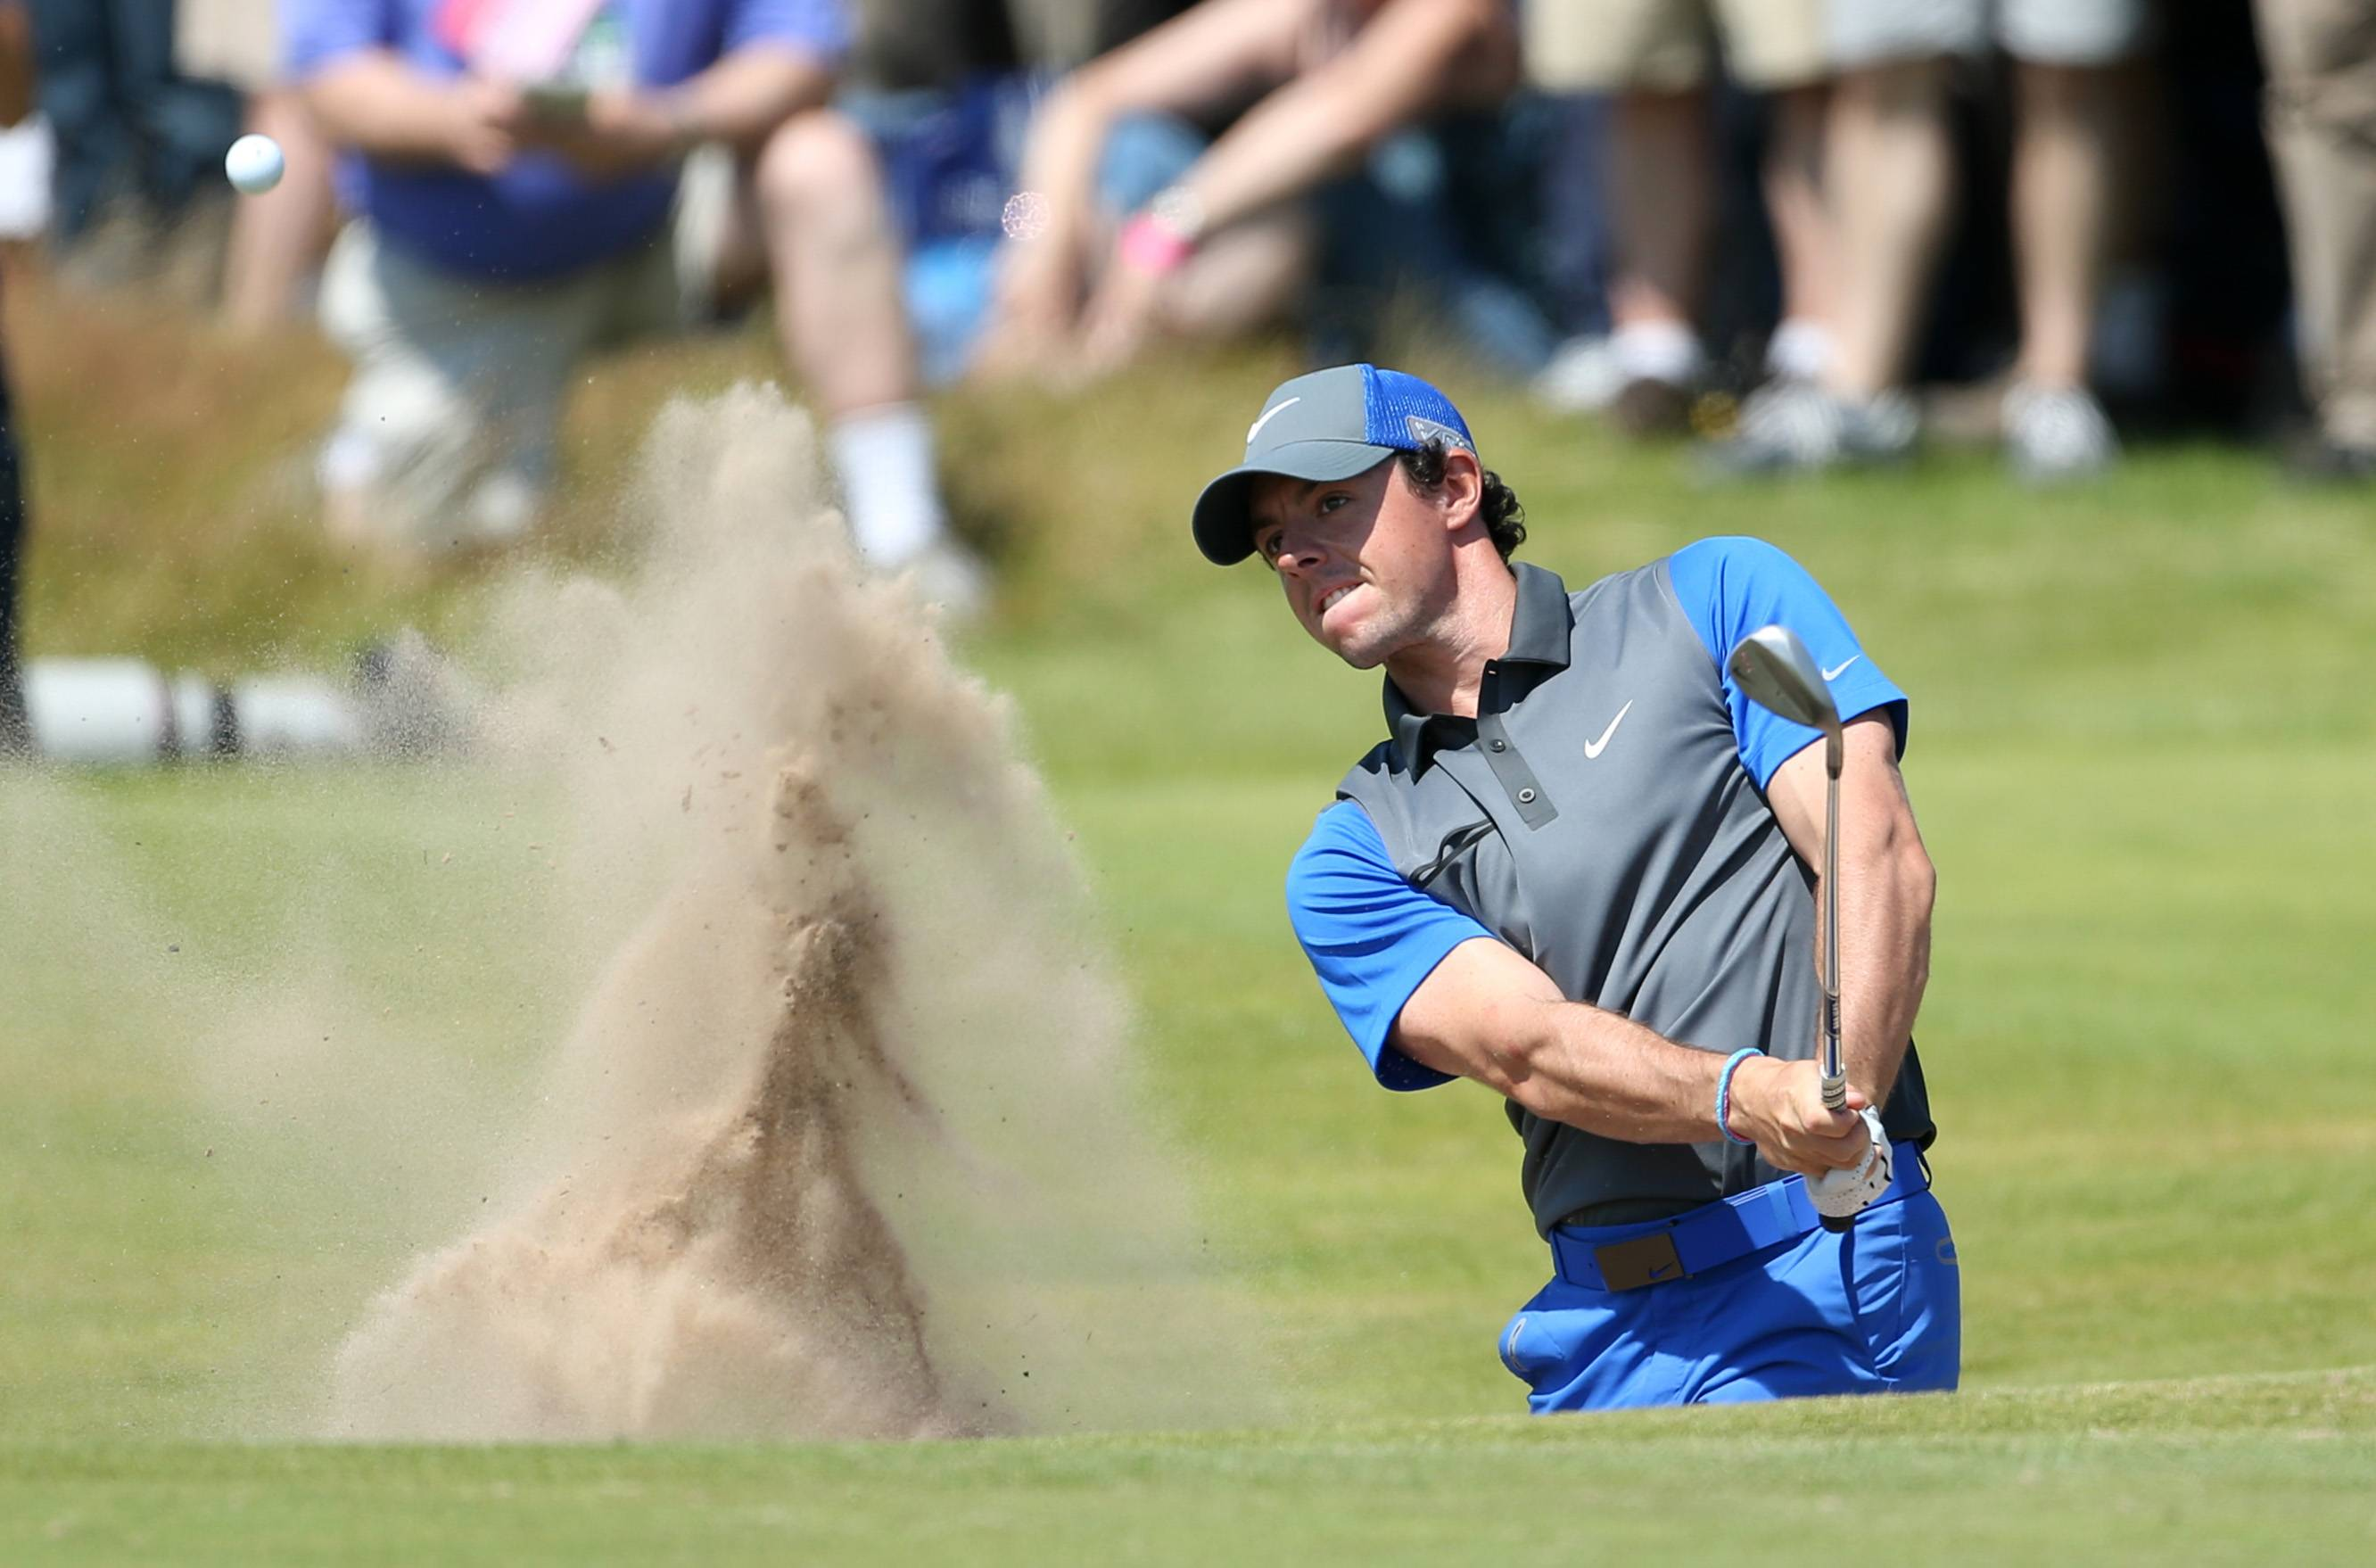 Rory McIlroy plays out of a bunker on the 16th hole Thursday during the first round of the British Open at the Royal Liverpool golf club.